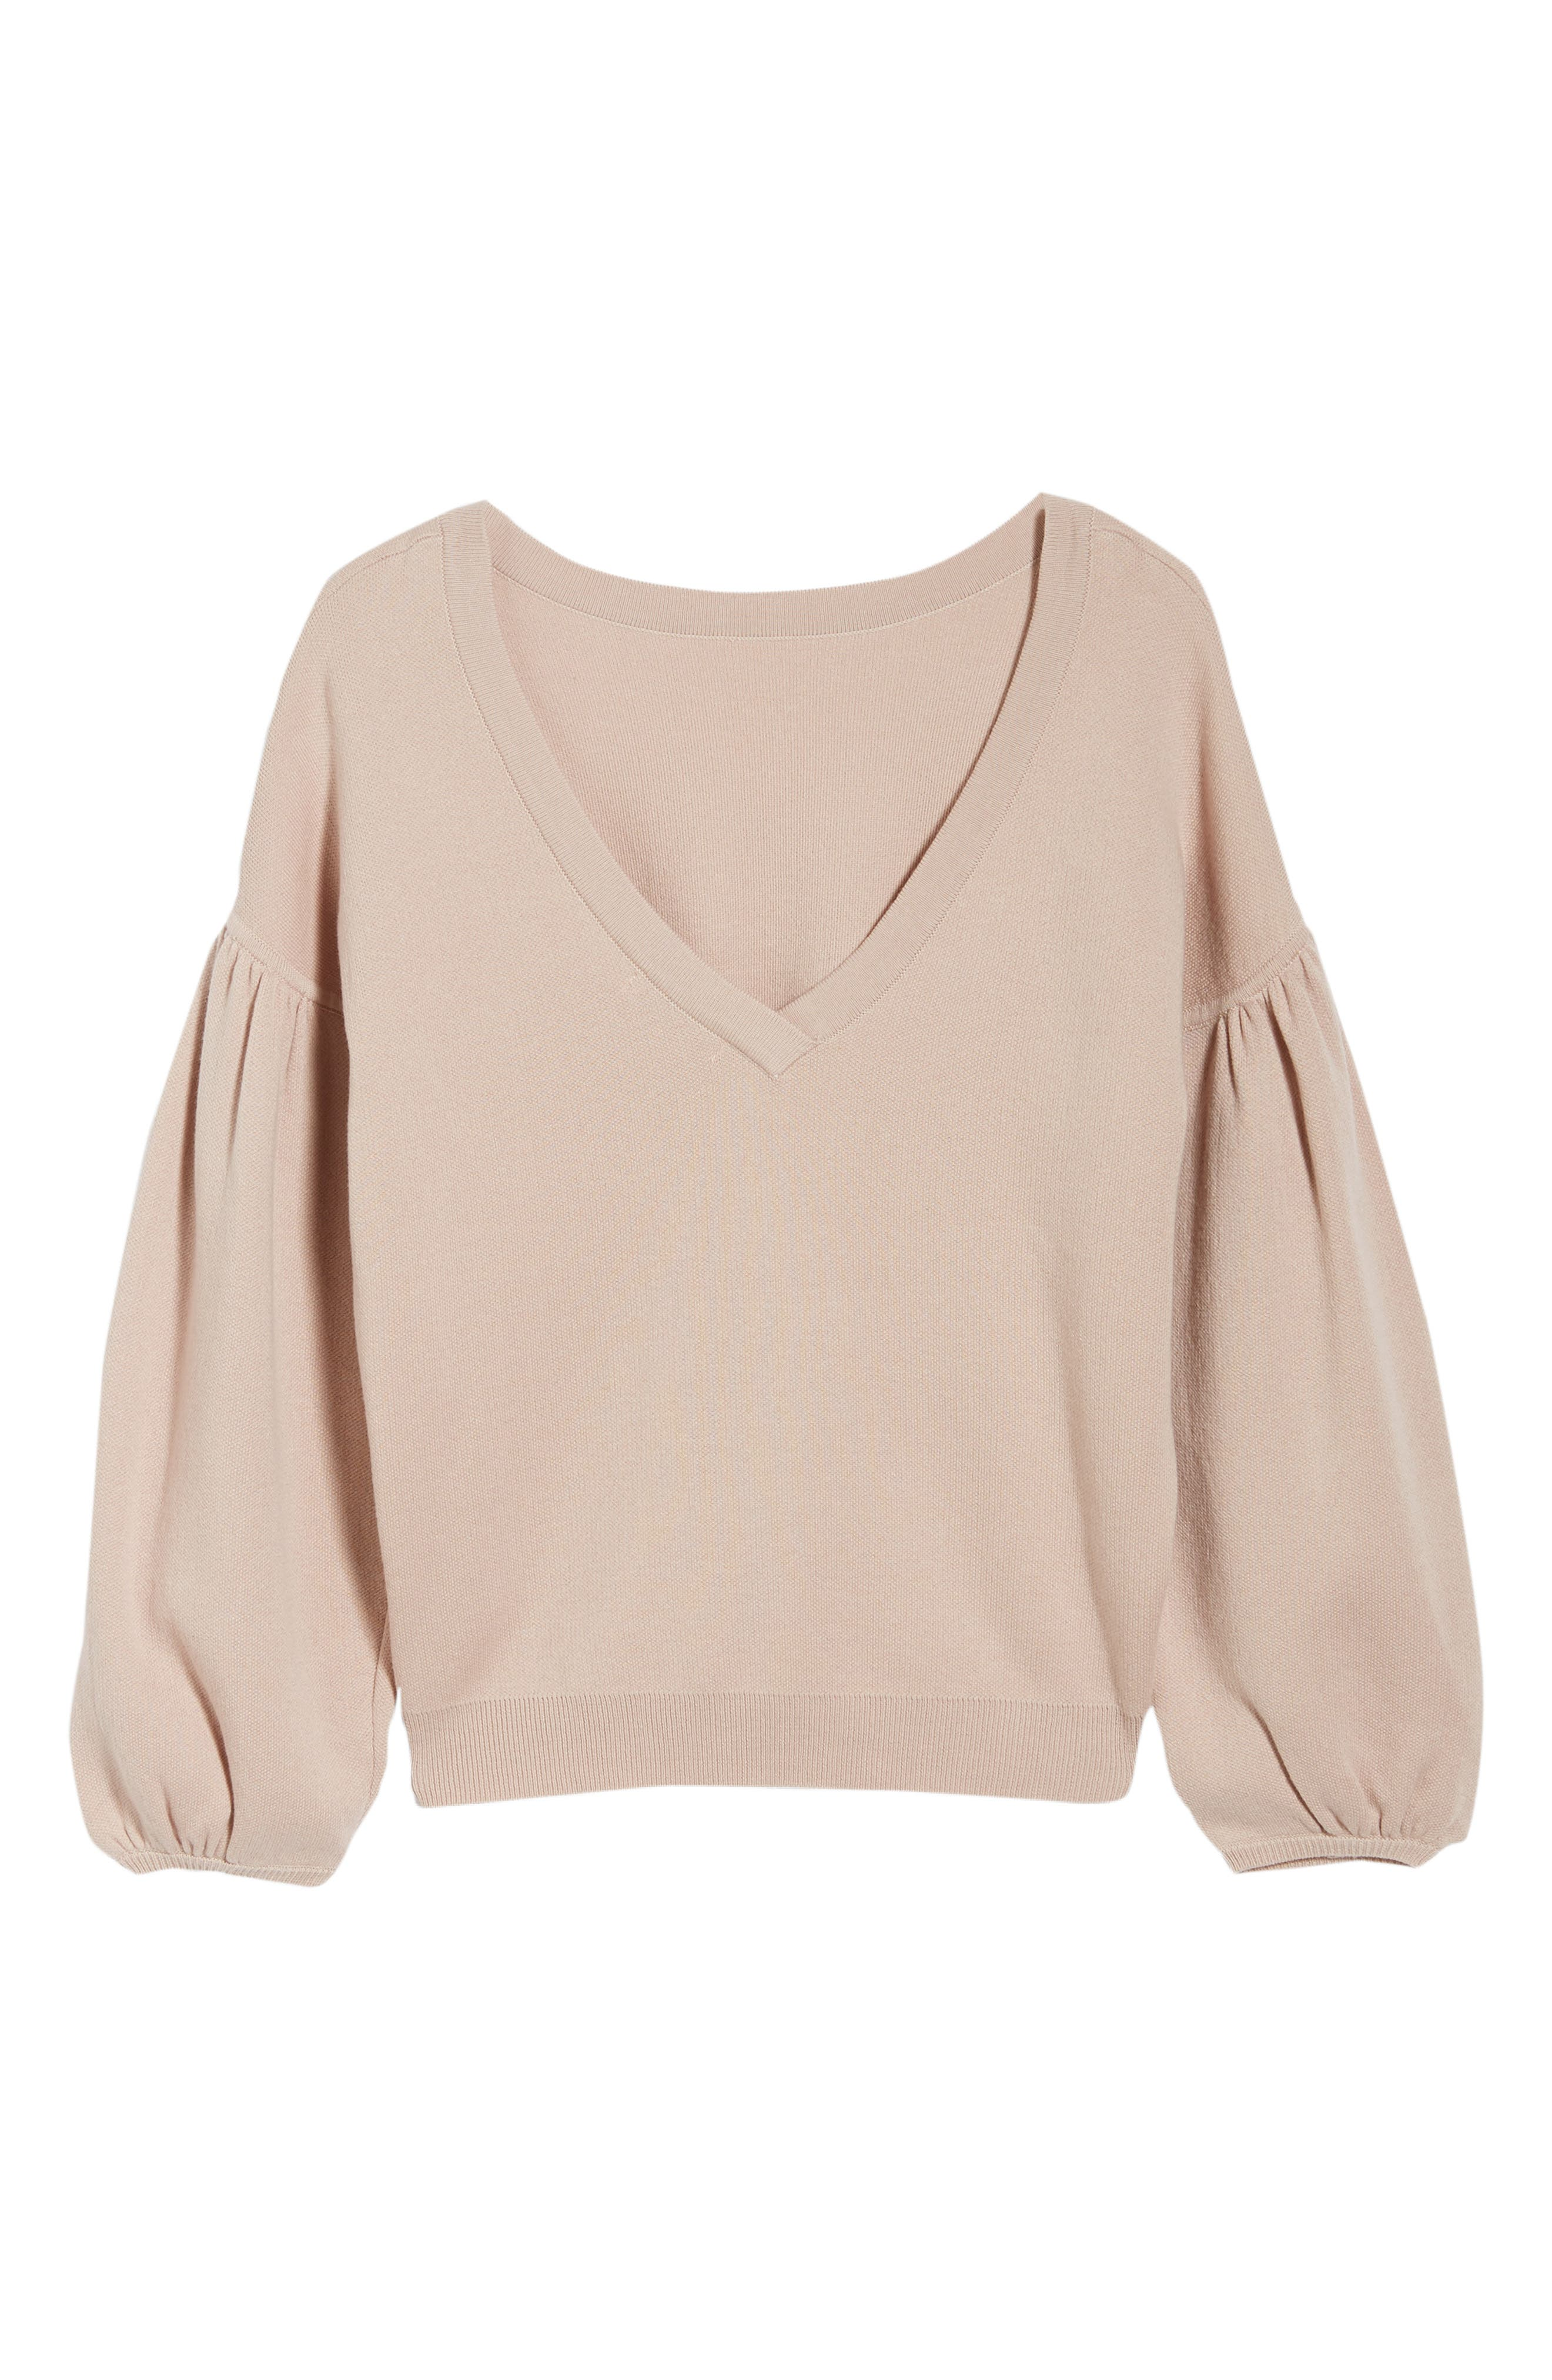 Bishop + Young Hailey Balloon Sleeve Sweater,                             Alternate thumbnail 6, color,                             QUARTZ